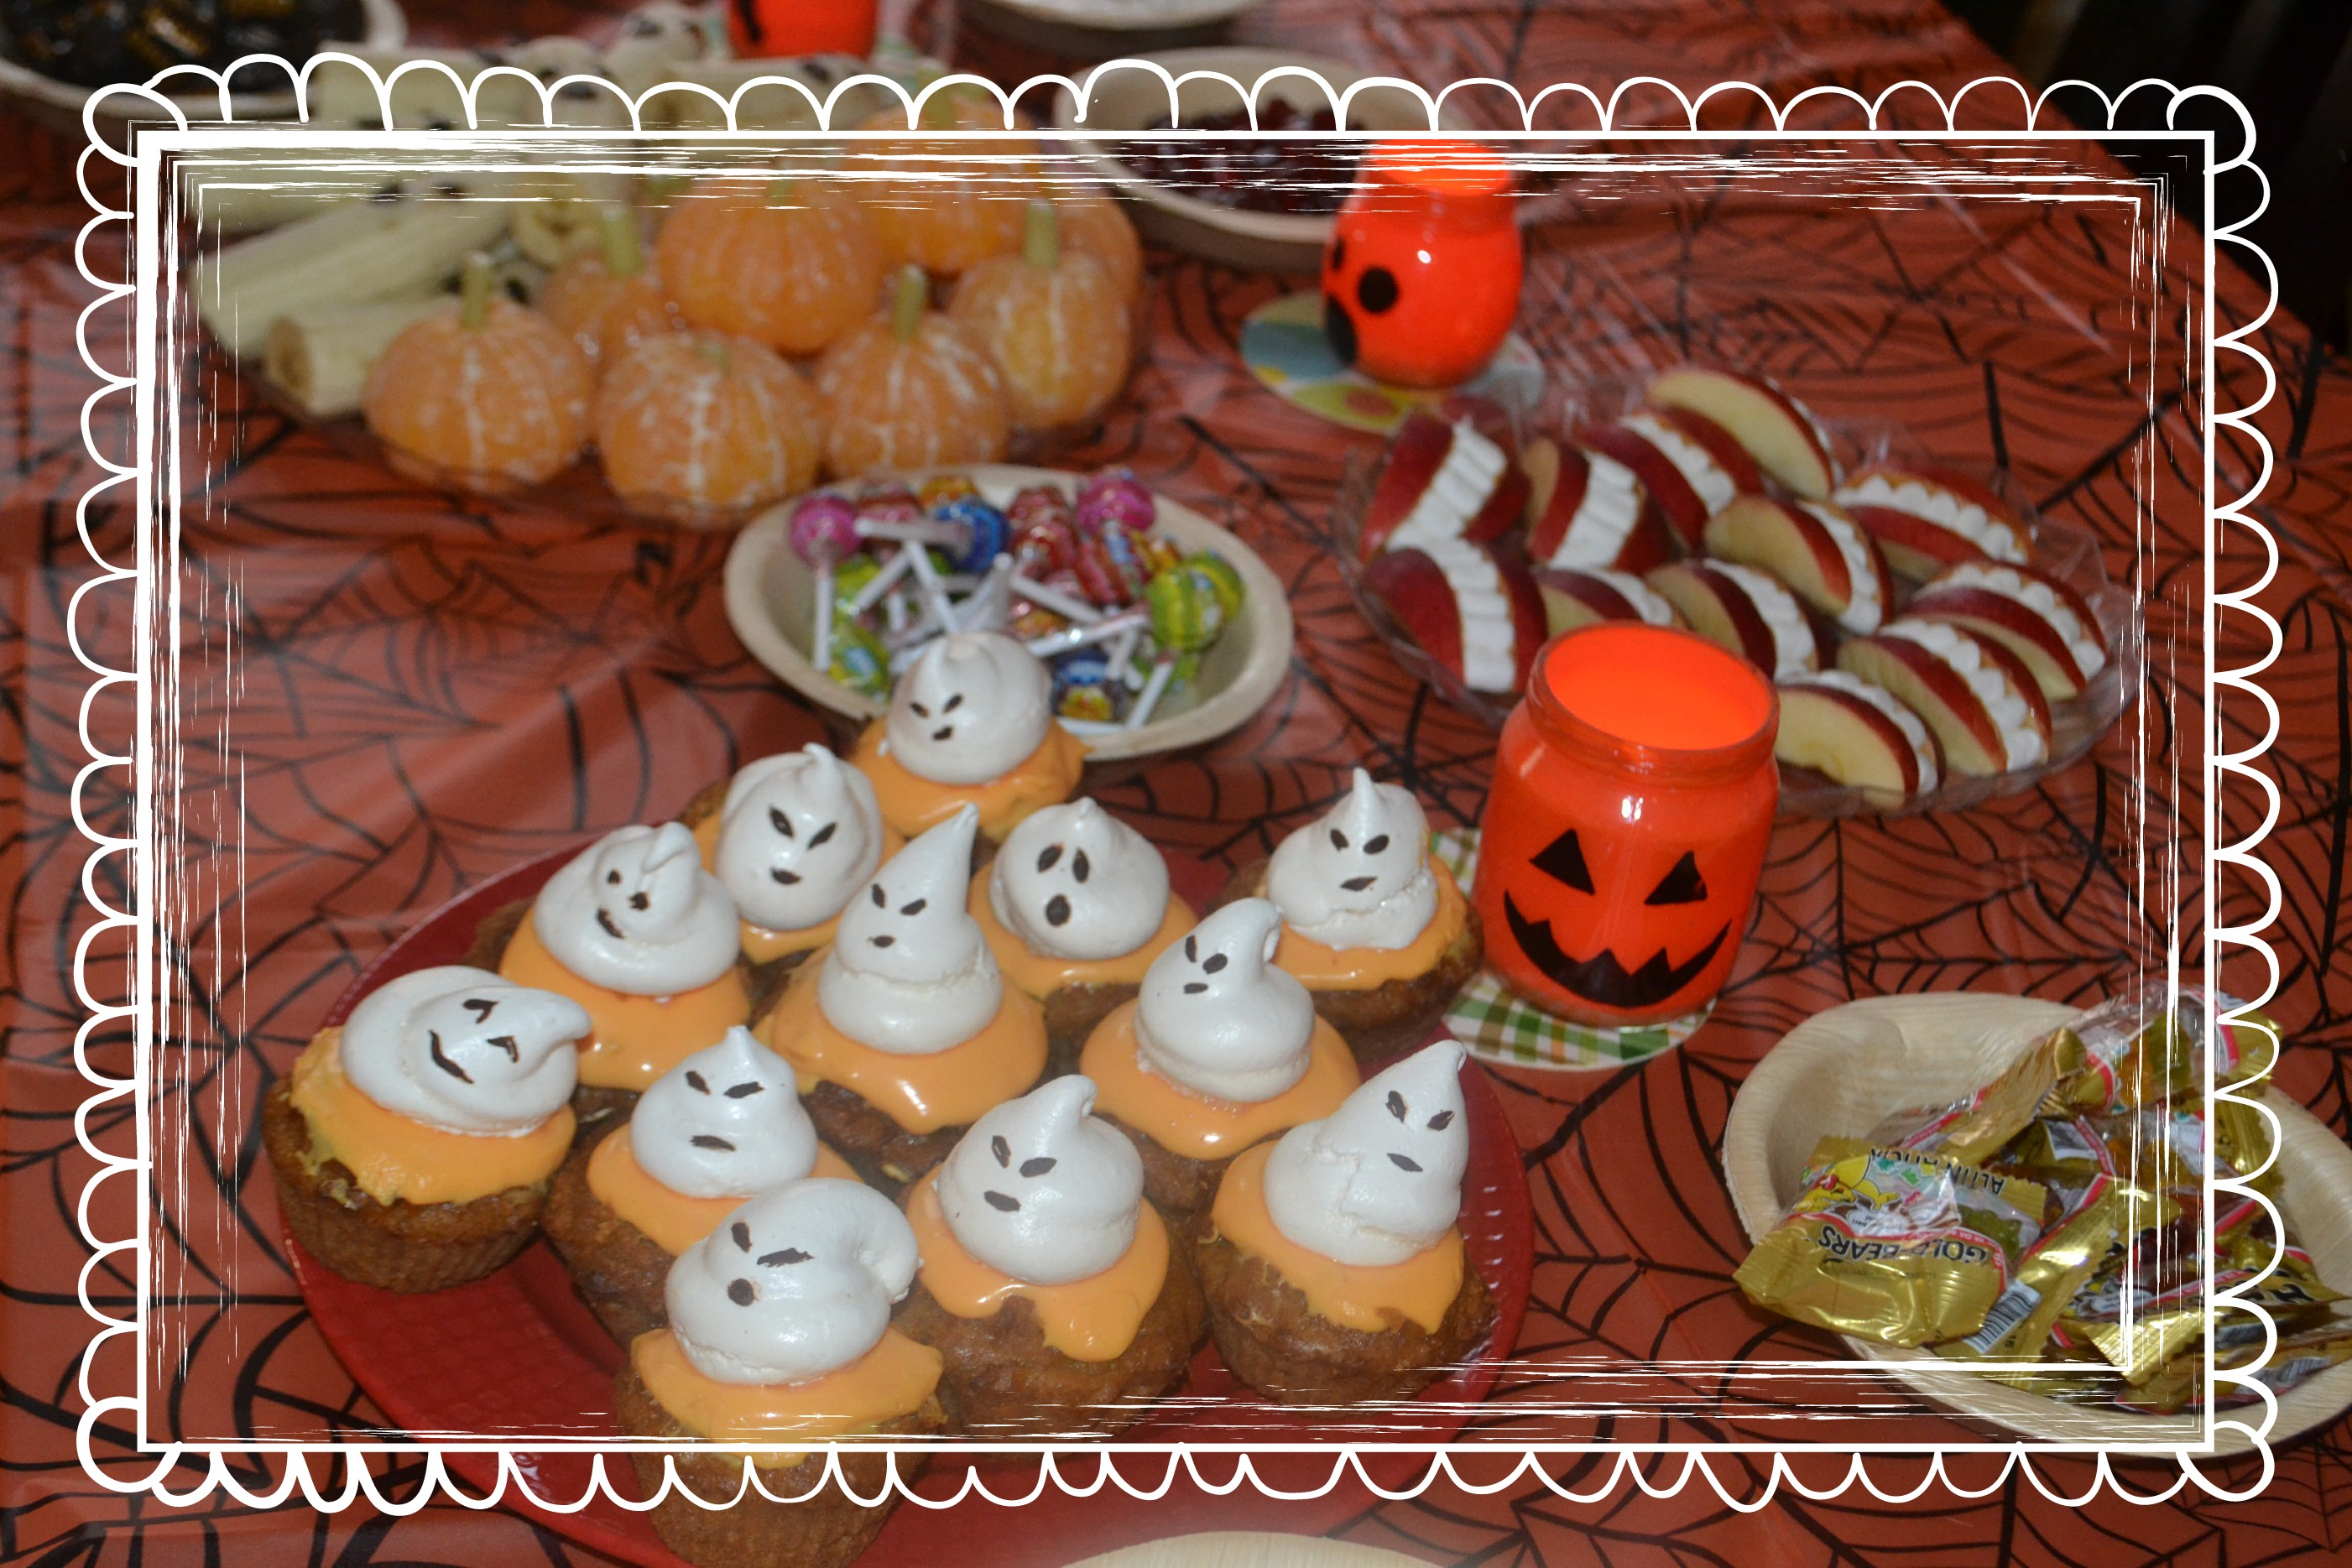 cupcakes fant mes meringu s pour halloween histoire de meringues pour d butants mademoiselle. Black Bedroom Furniture Sets. Home Design Ideas